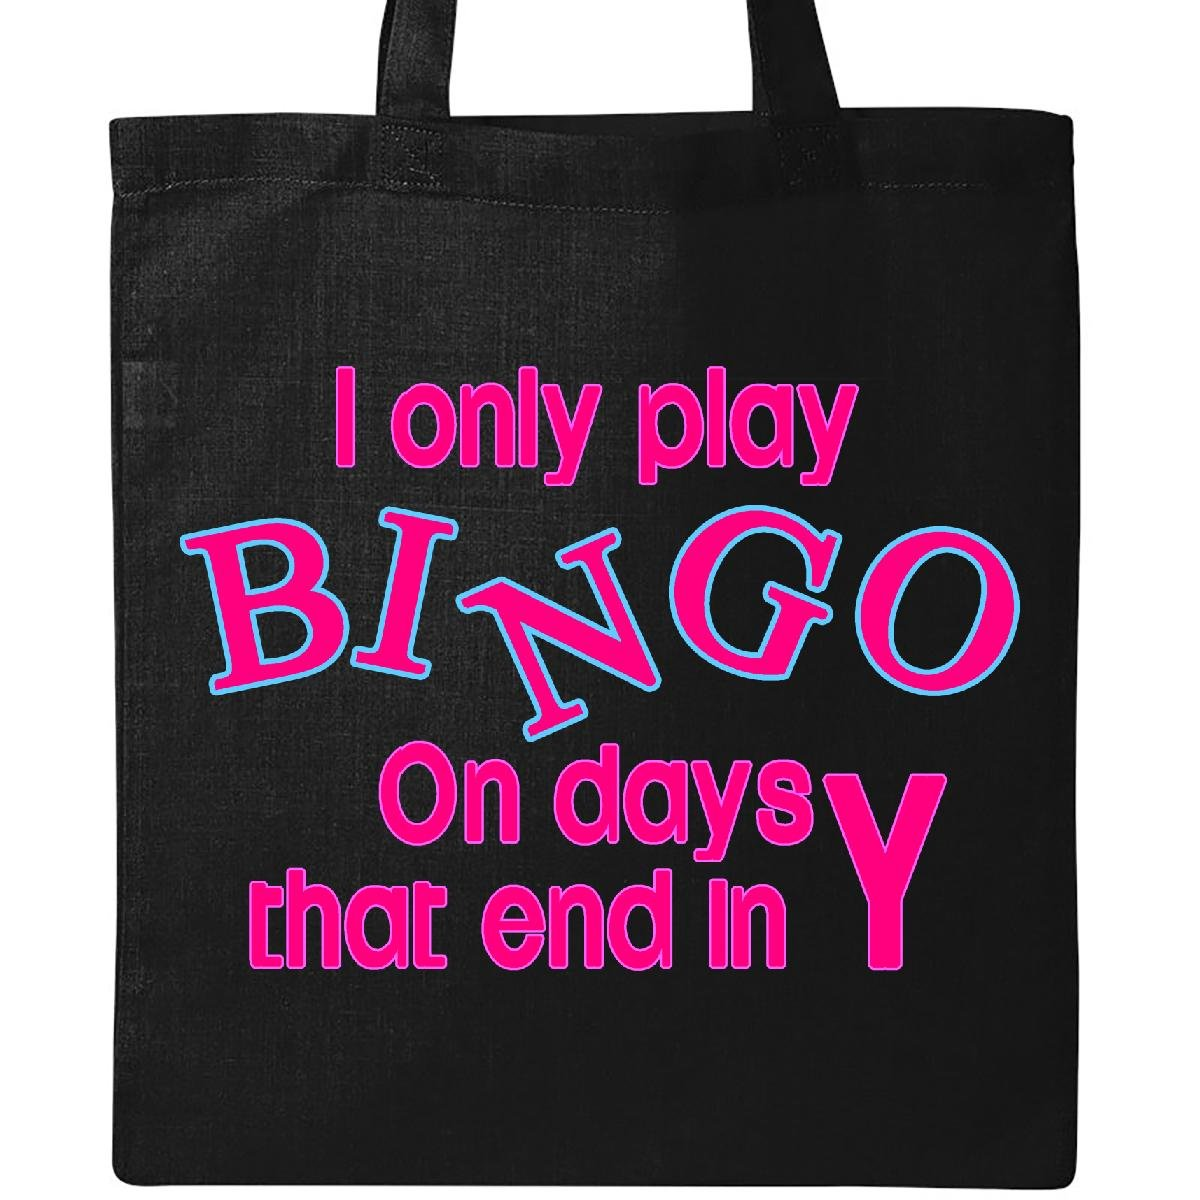 Inktastic I only play Bingo on days that end in Y Tote Bag Black by inktastic